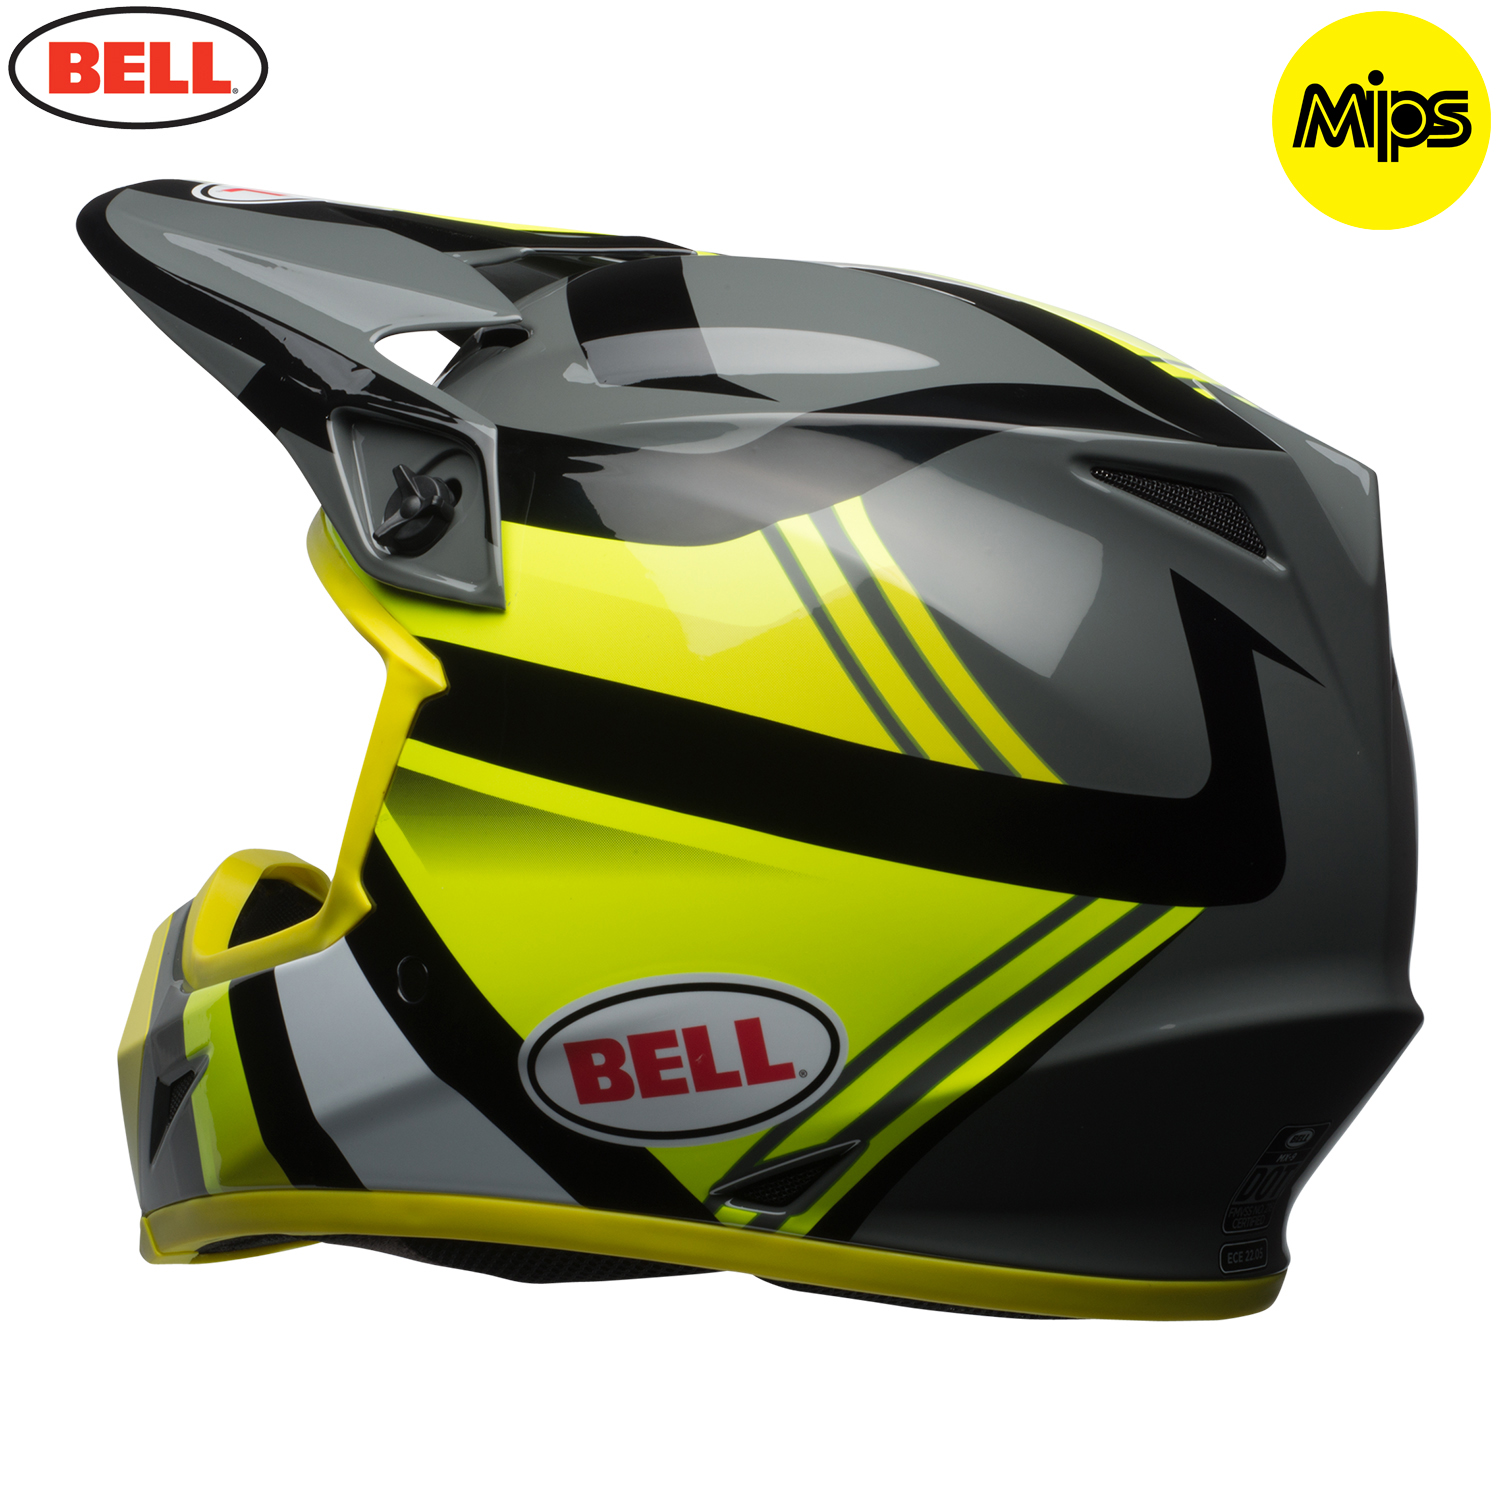 2018 bell mx 9 mips helmet marauder hi viz yellow black. Black Bedroom Furniture Sets. Home Design Ideas